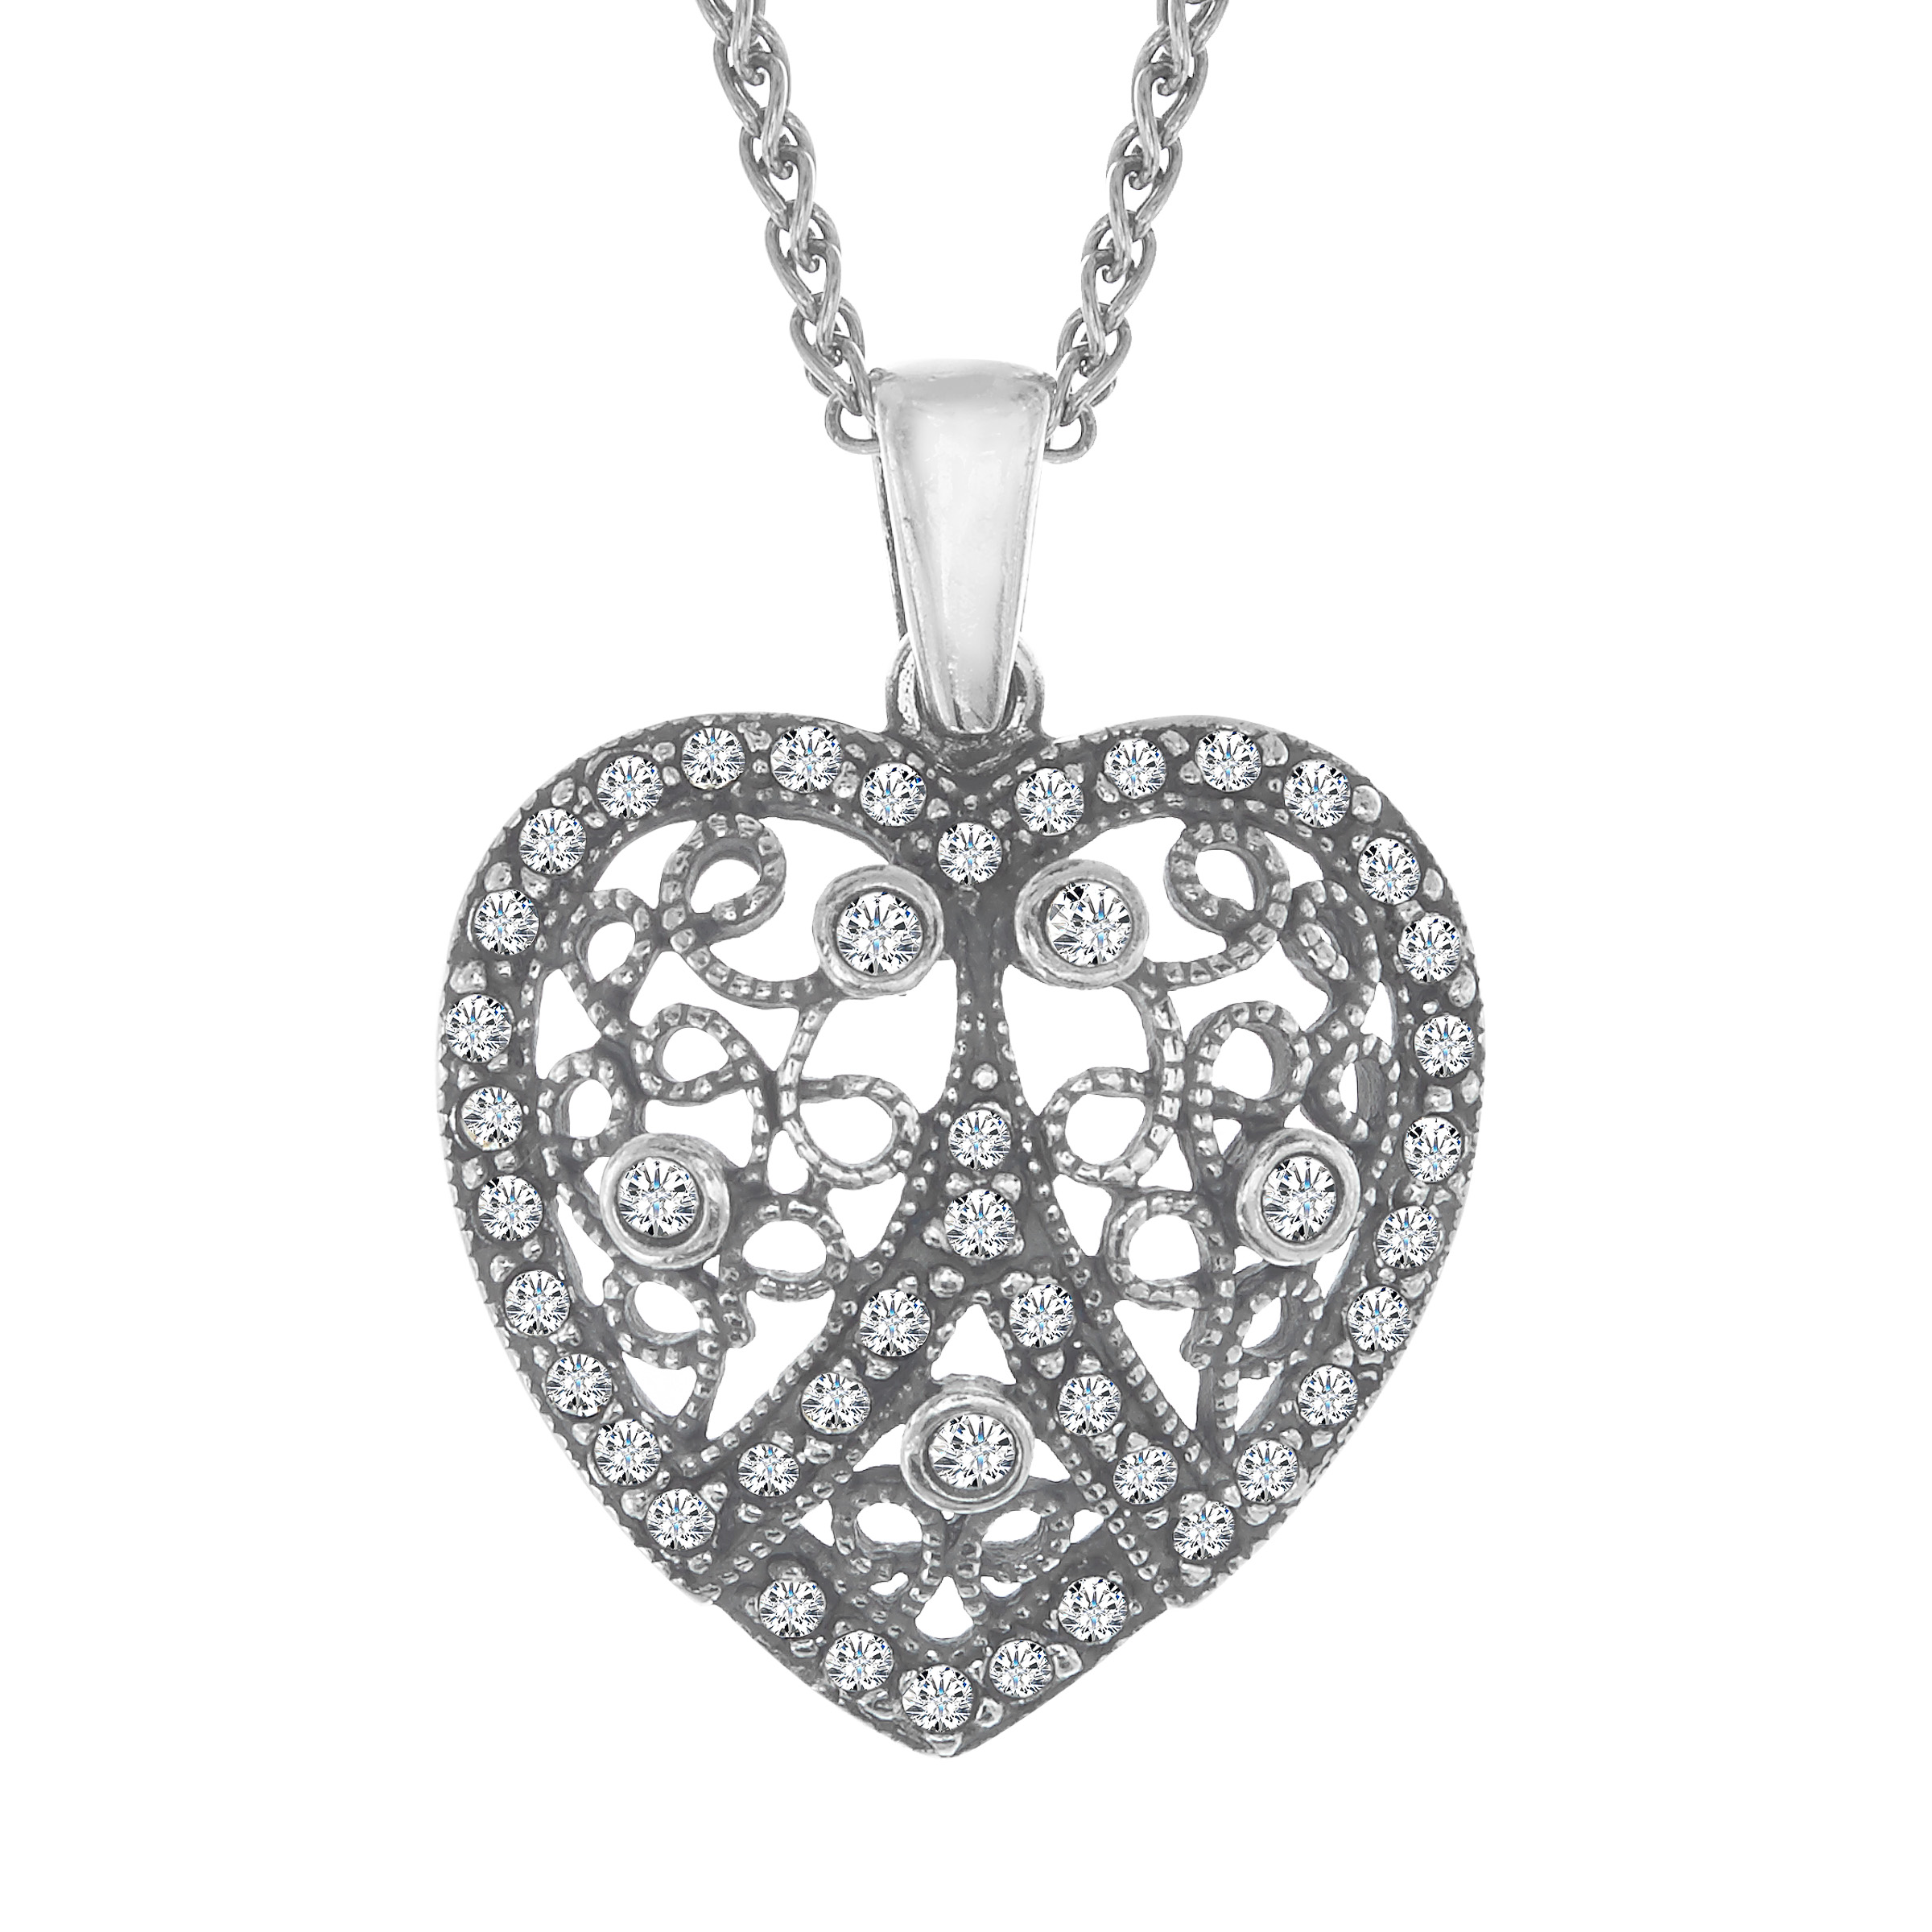 Van Kempen Art Nouveau Heart Pendant with Swarovski Crystals in Sterling Silver